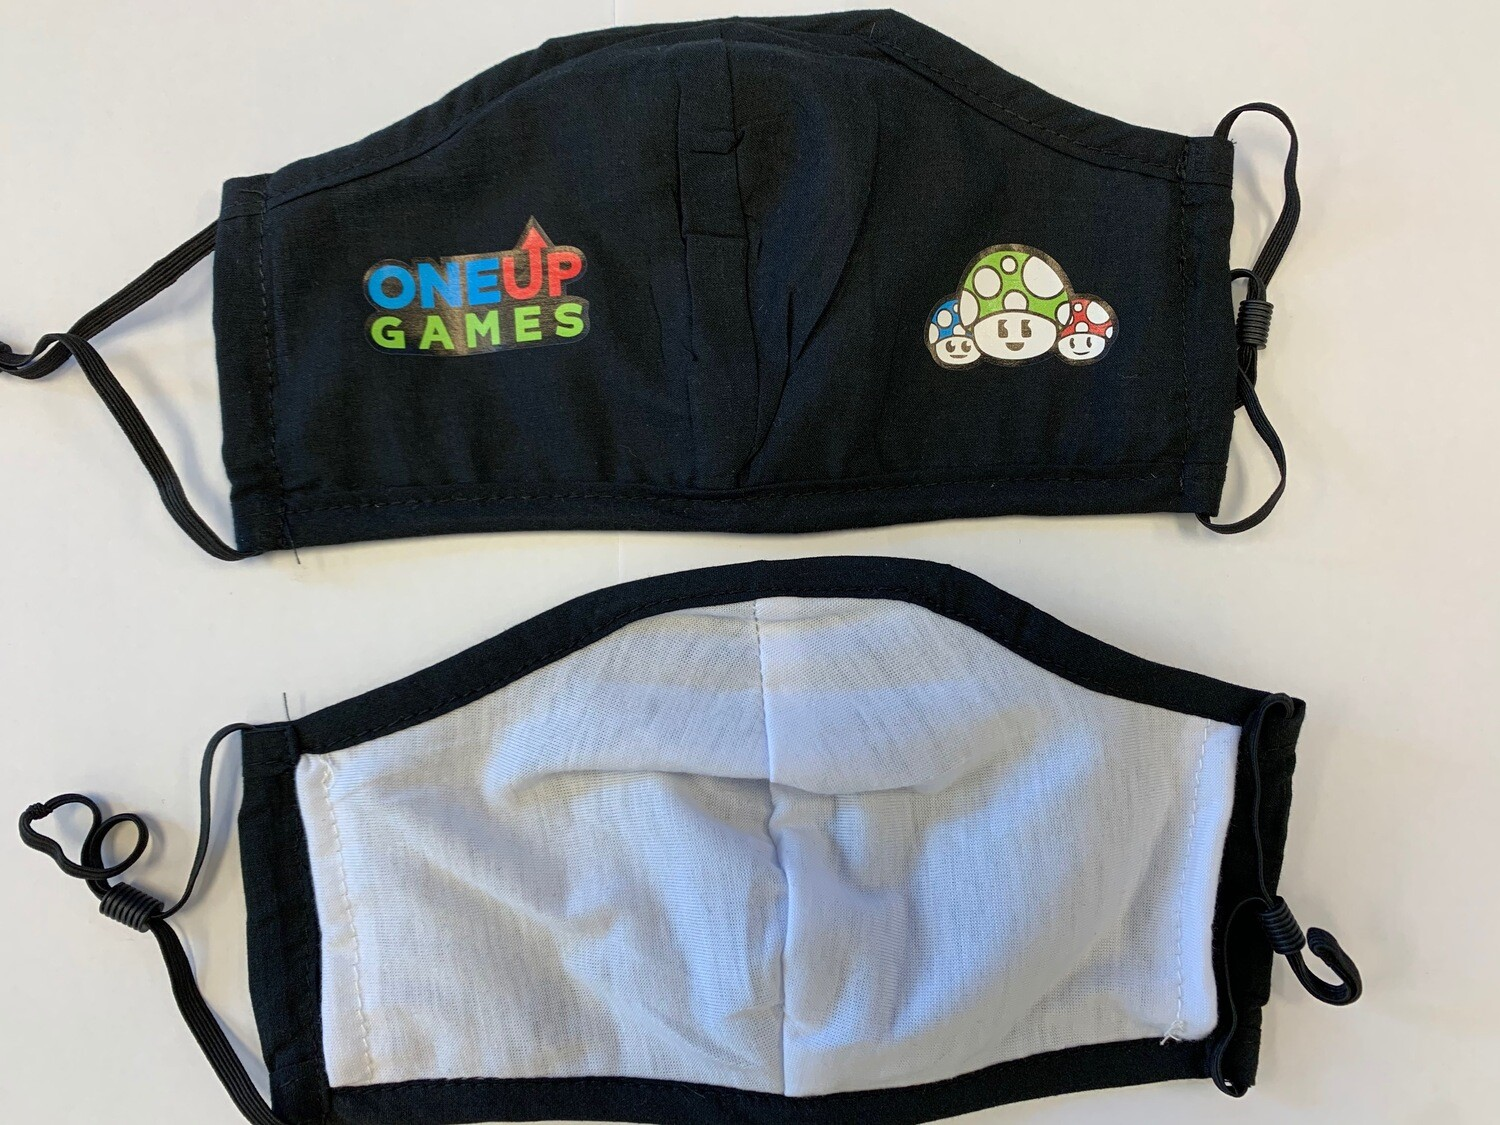 One Up Games Mask